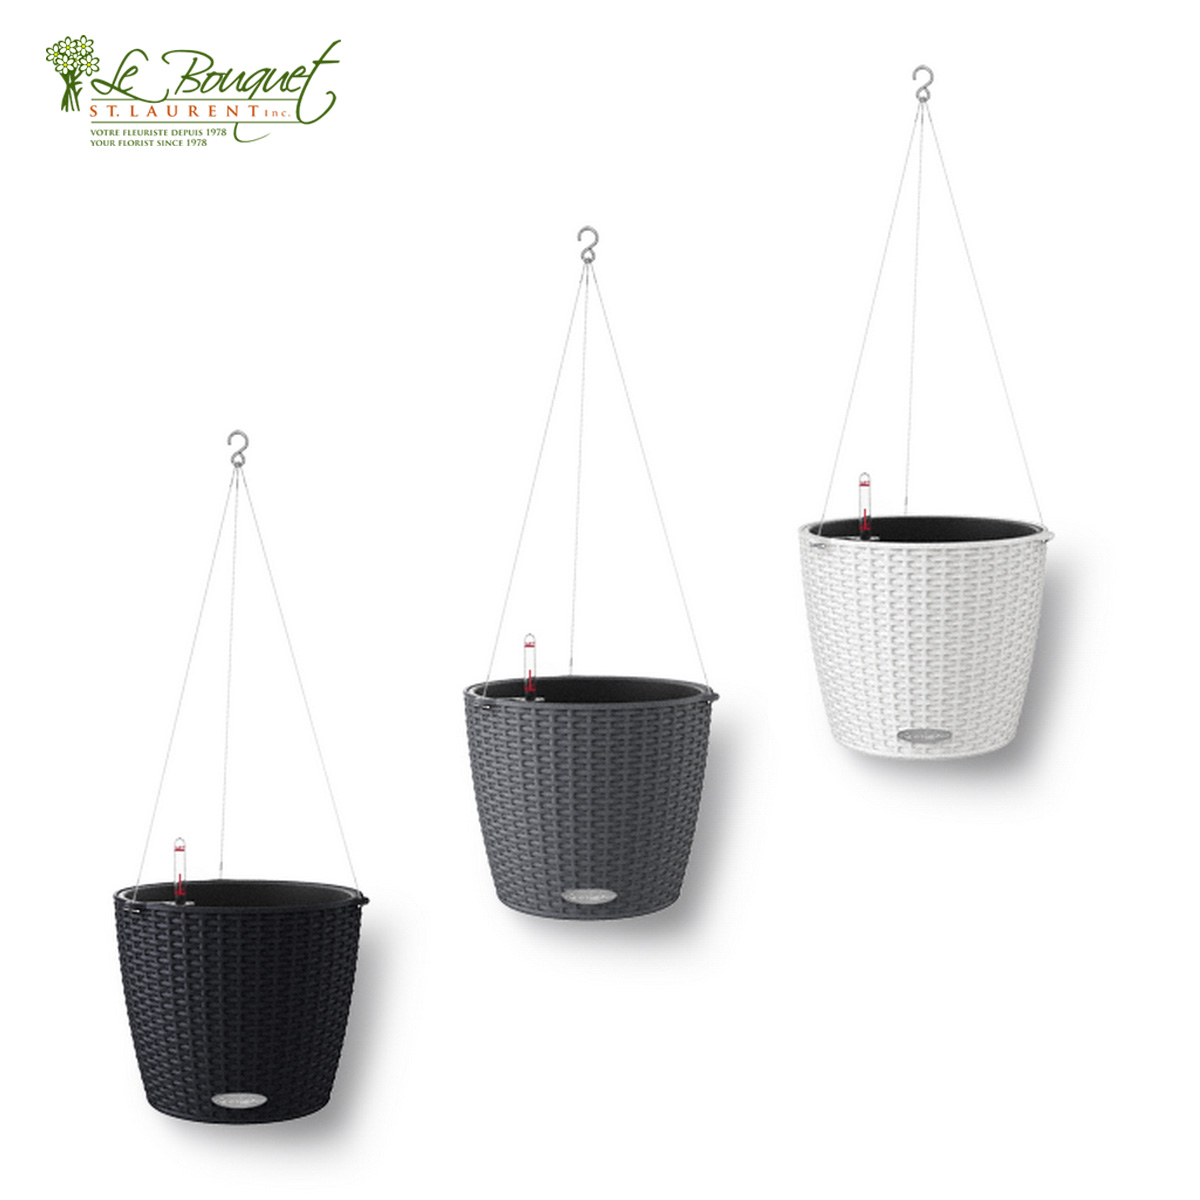 Nido collection self watering pots by Lechuza sold by Montreal florist Le Bouquet St laurent